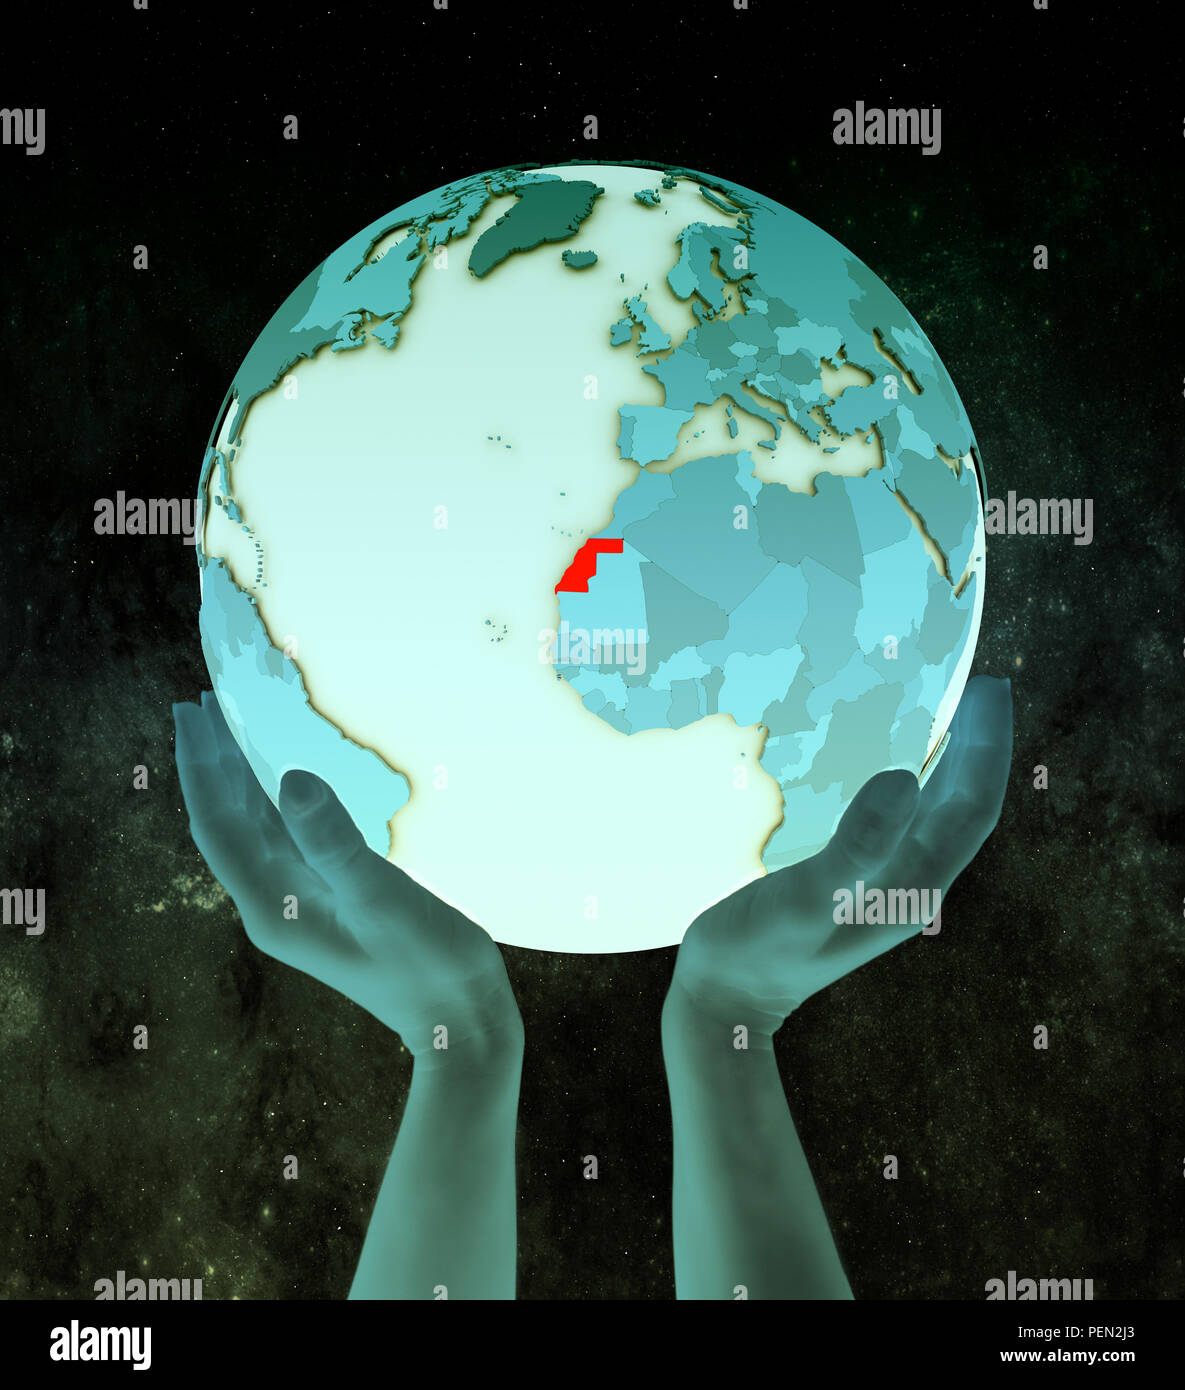 Western Sahara on shiny blue globe in hands in space. 3D illustration. - Stock Image